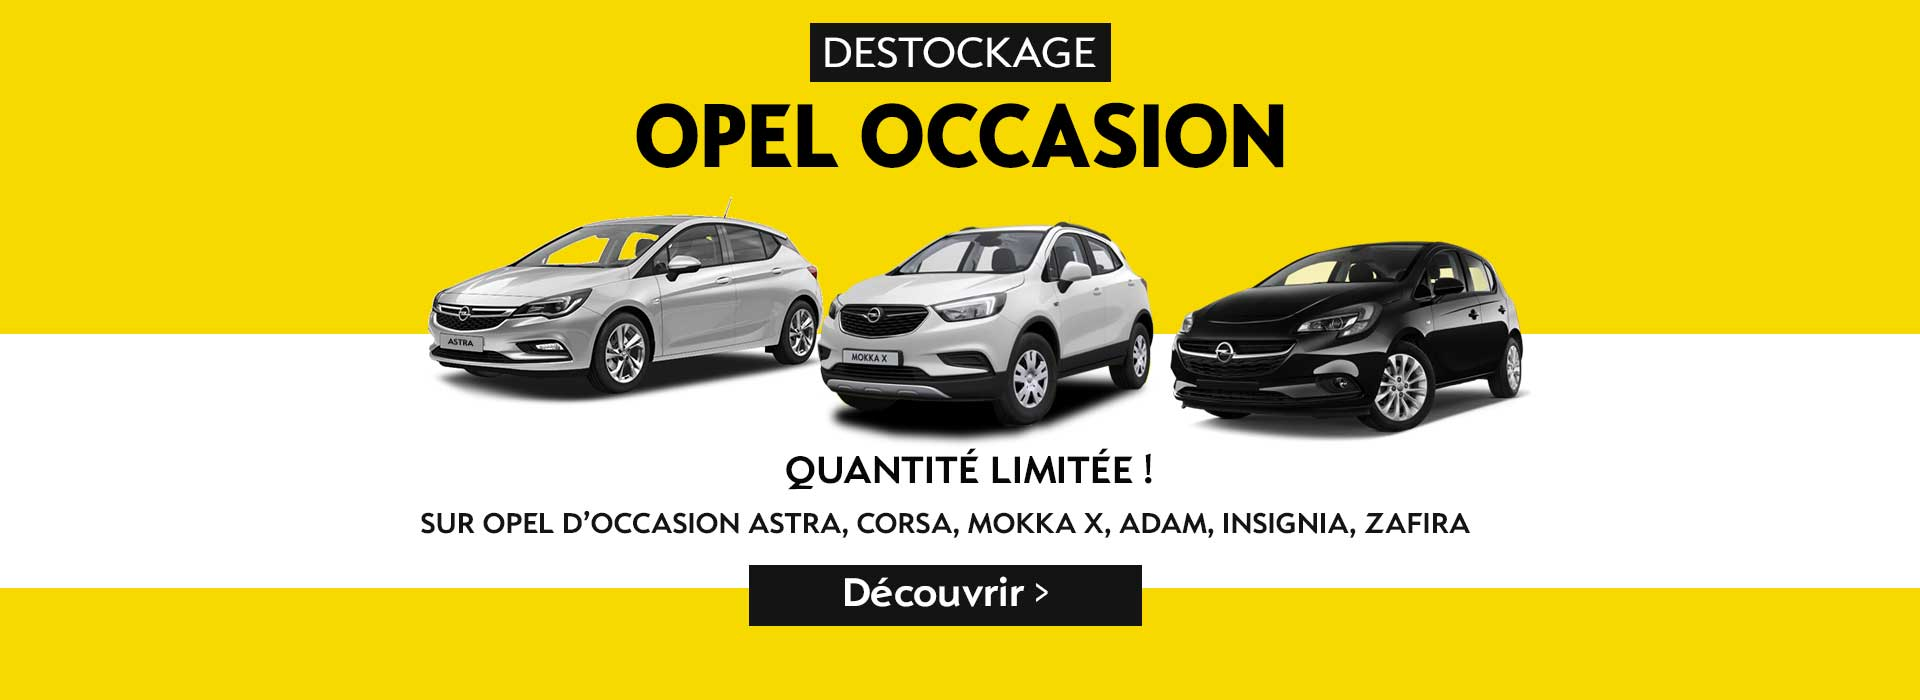 opel belfort vente voiture neuve vehicule occasion. Black Bedroom Furniture Sets. Home Design Ideas